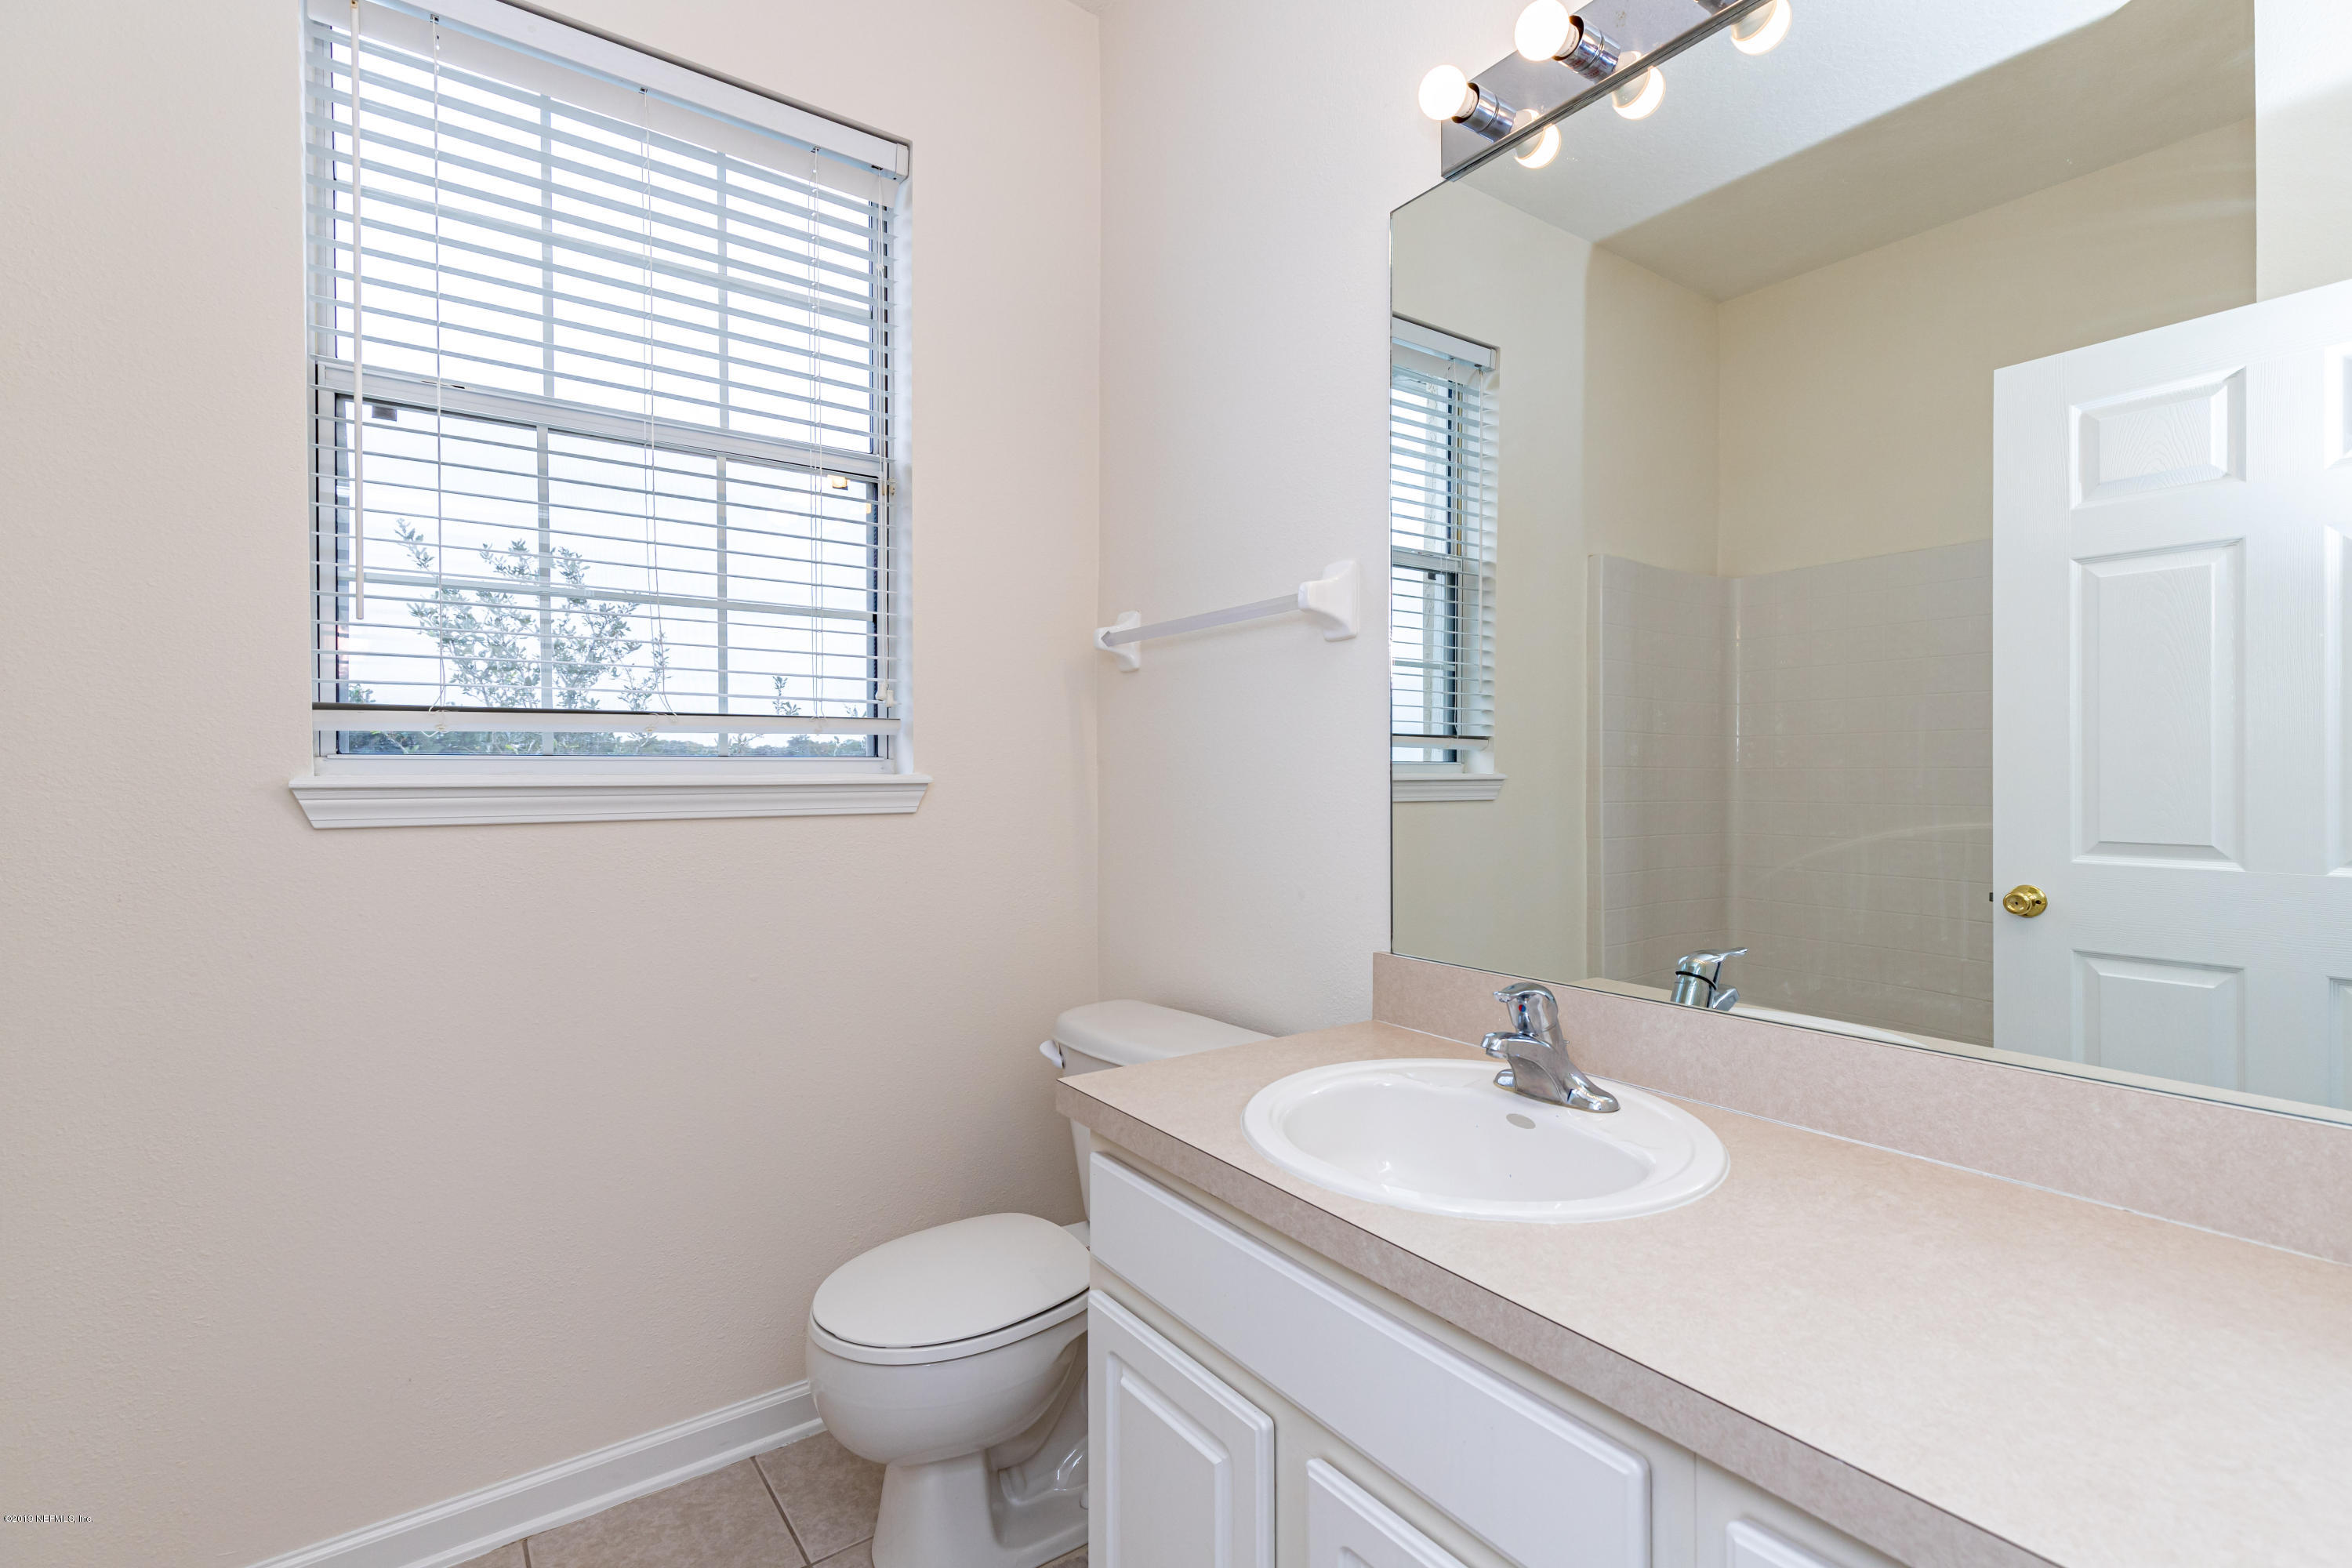 7801 POINT MEADOWS- JACKSONVILLE- FLORIDA 32256, 3 Bedrooms Bedrooms, ,2 BathroomsBathrooms,Condo,For sale,POINT MEADOWS,1014790